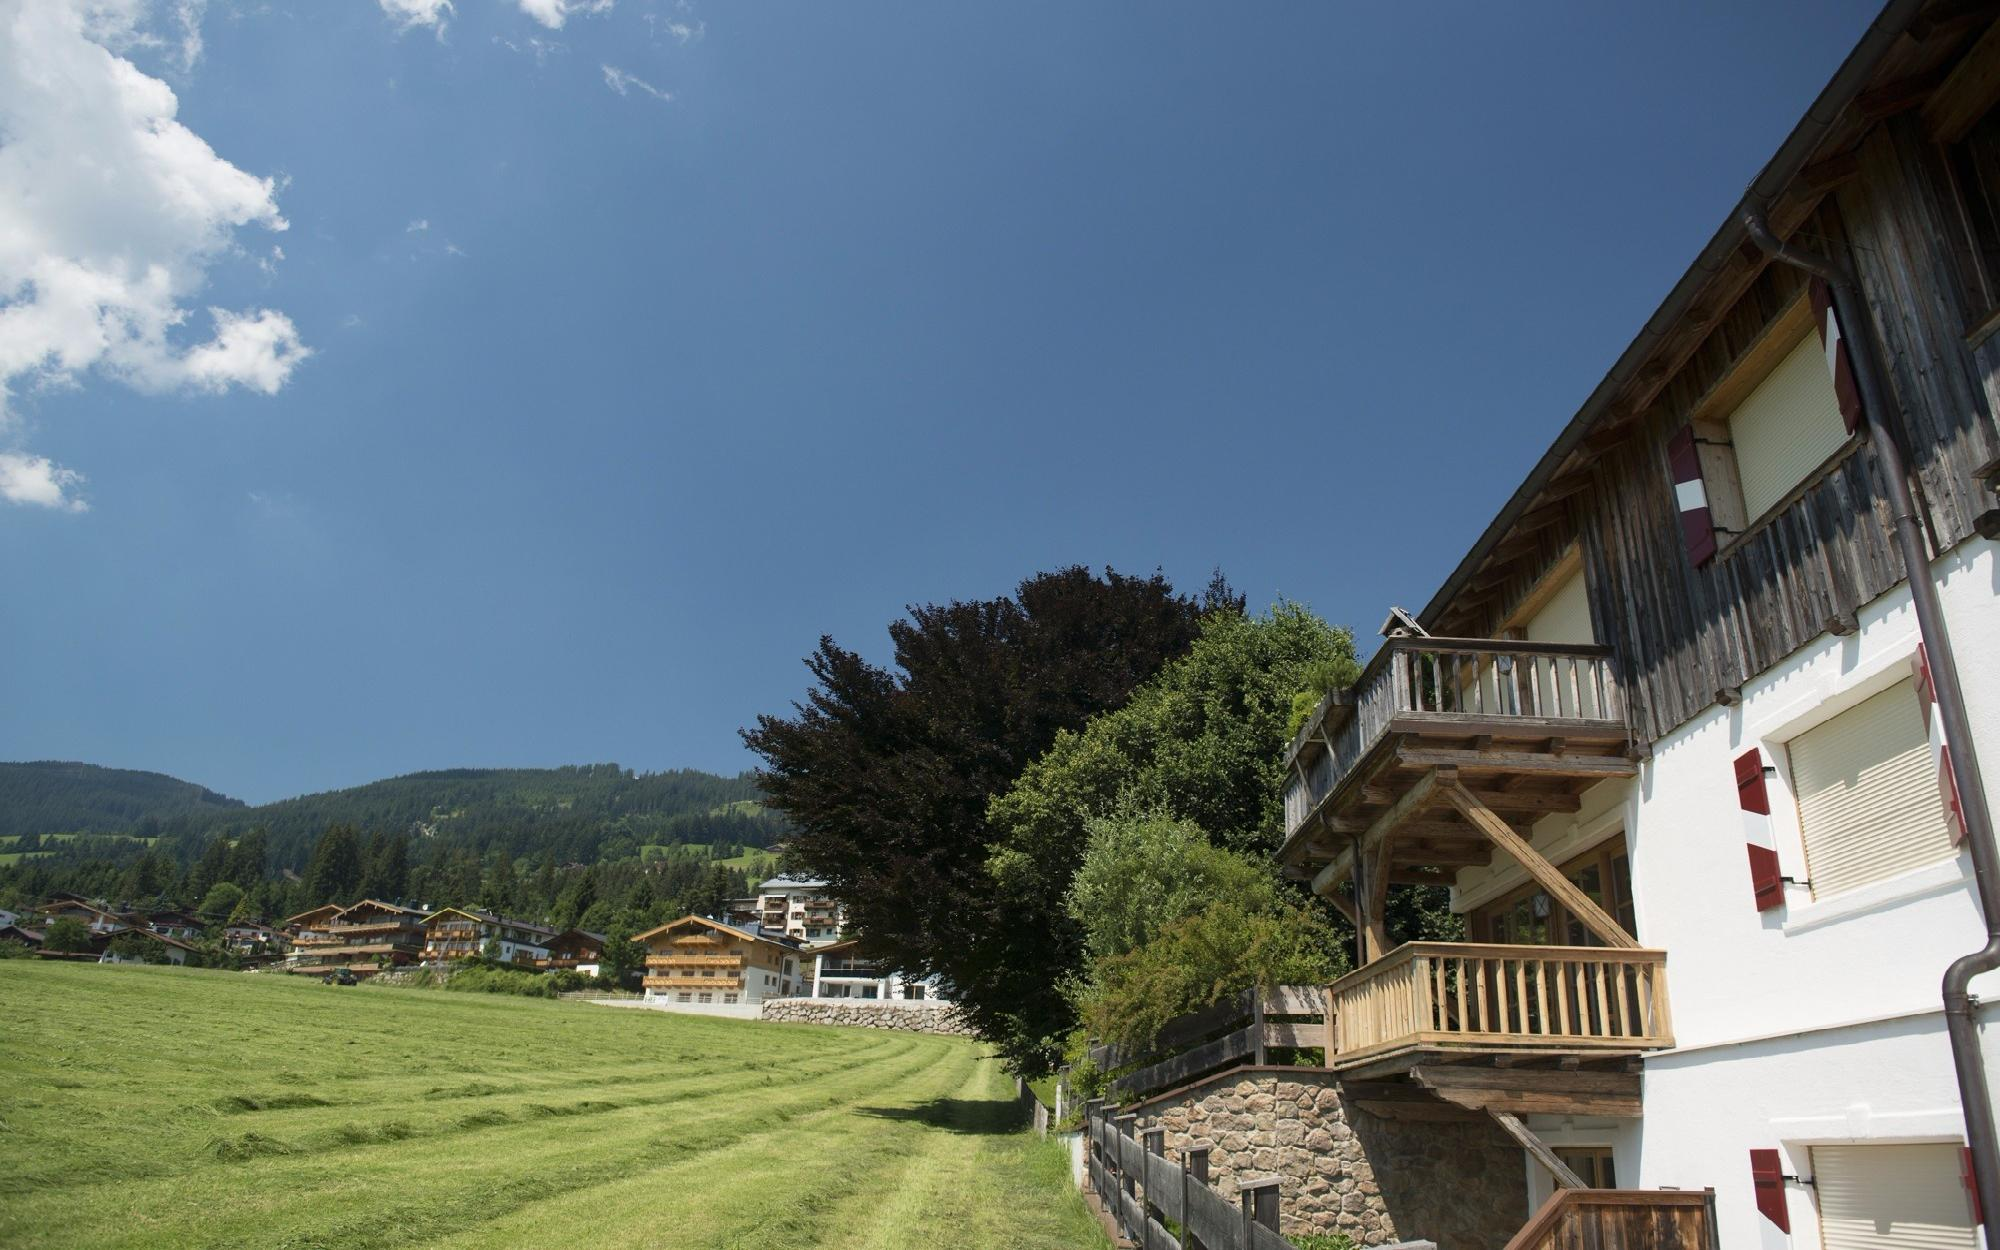 Chic apartment in a sunny outermost region in Tyrol For Sale - Kirchberg